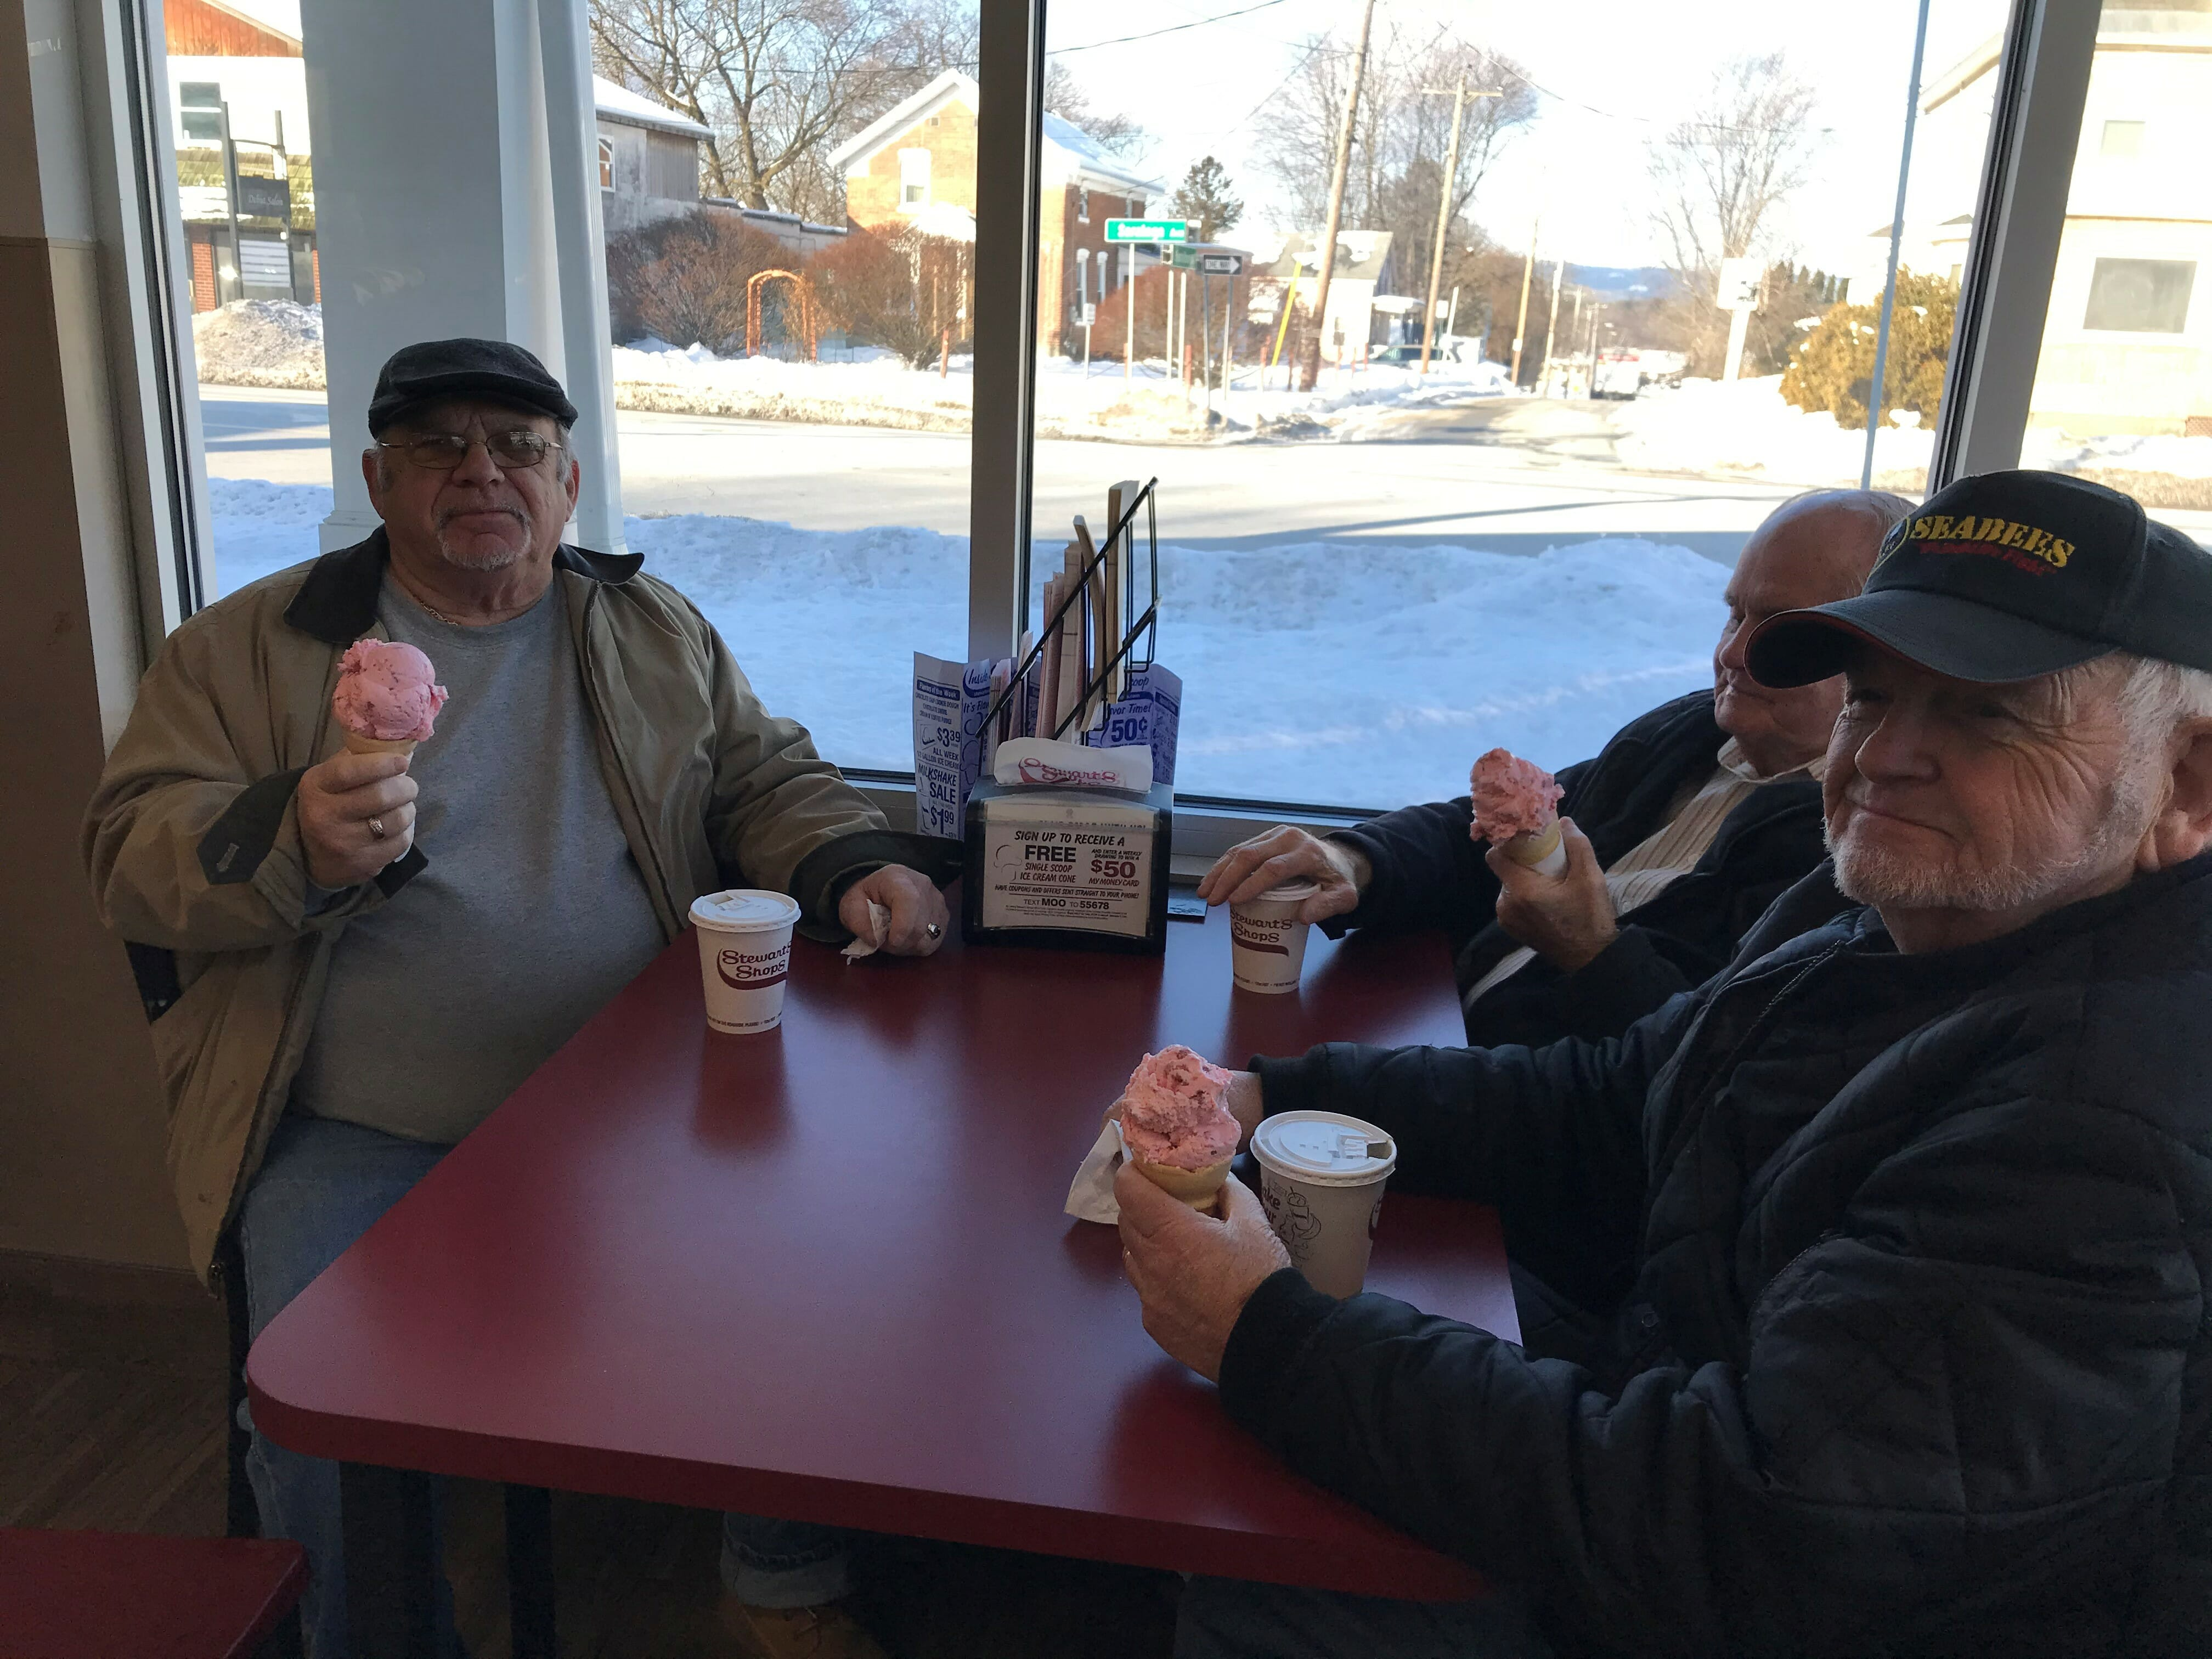 3 older men having ice cream together at a booth